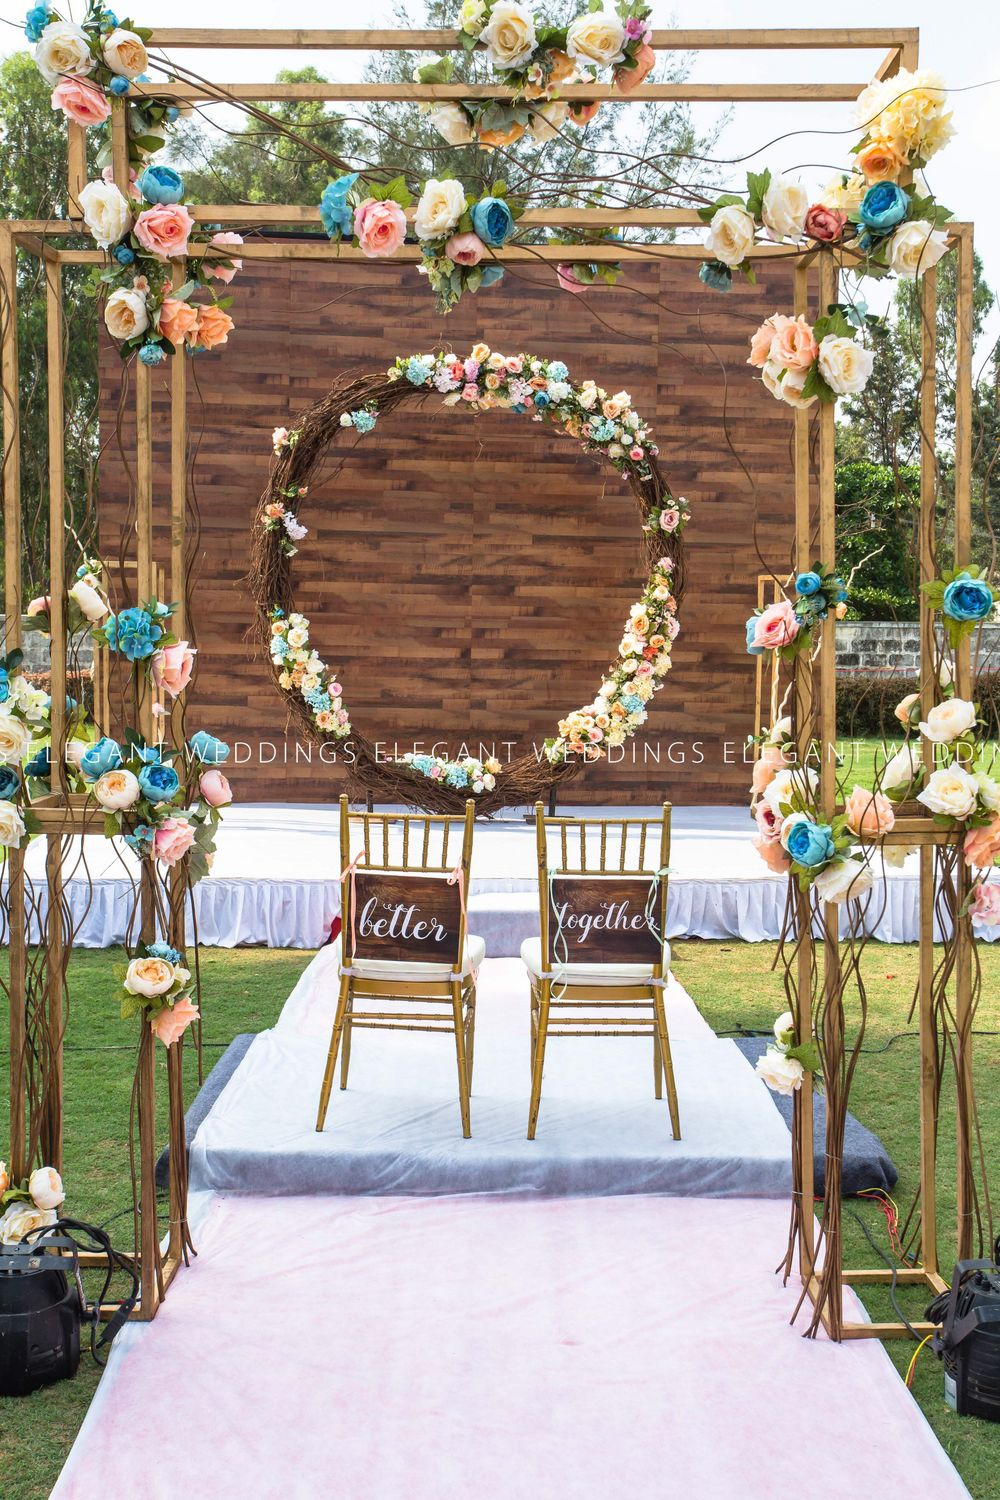 Photo of Floral wreath and couple chairs with simple mandap